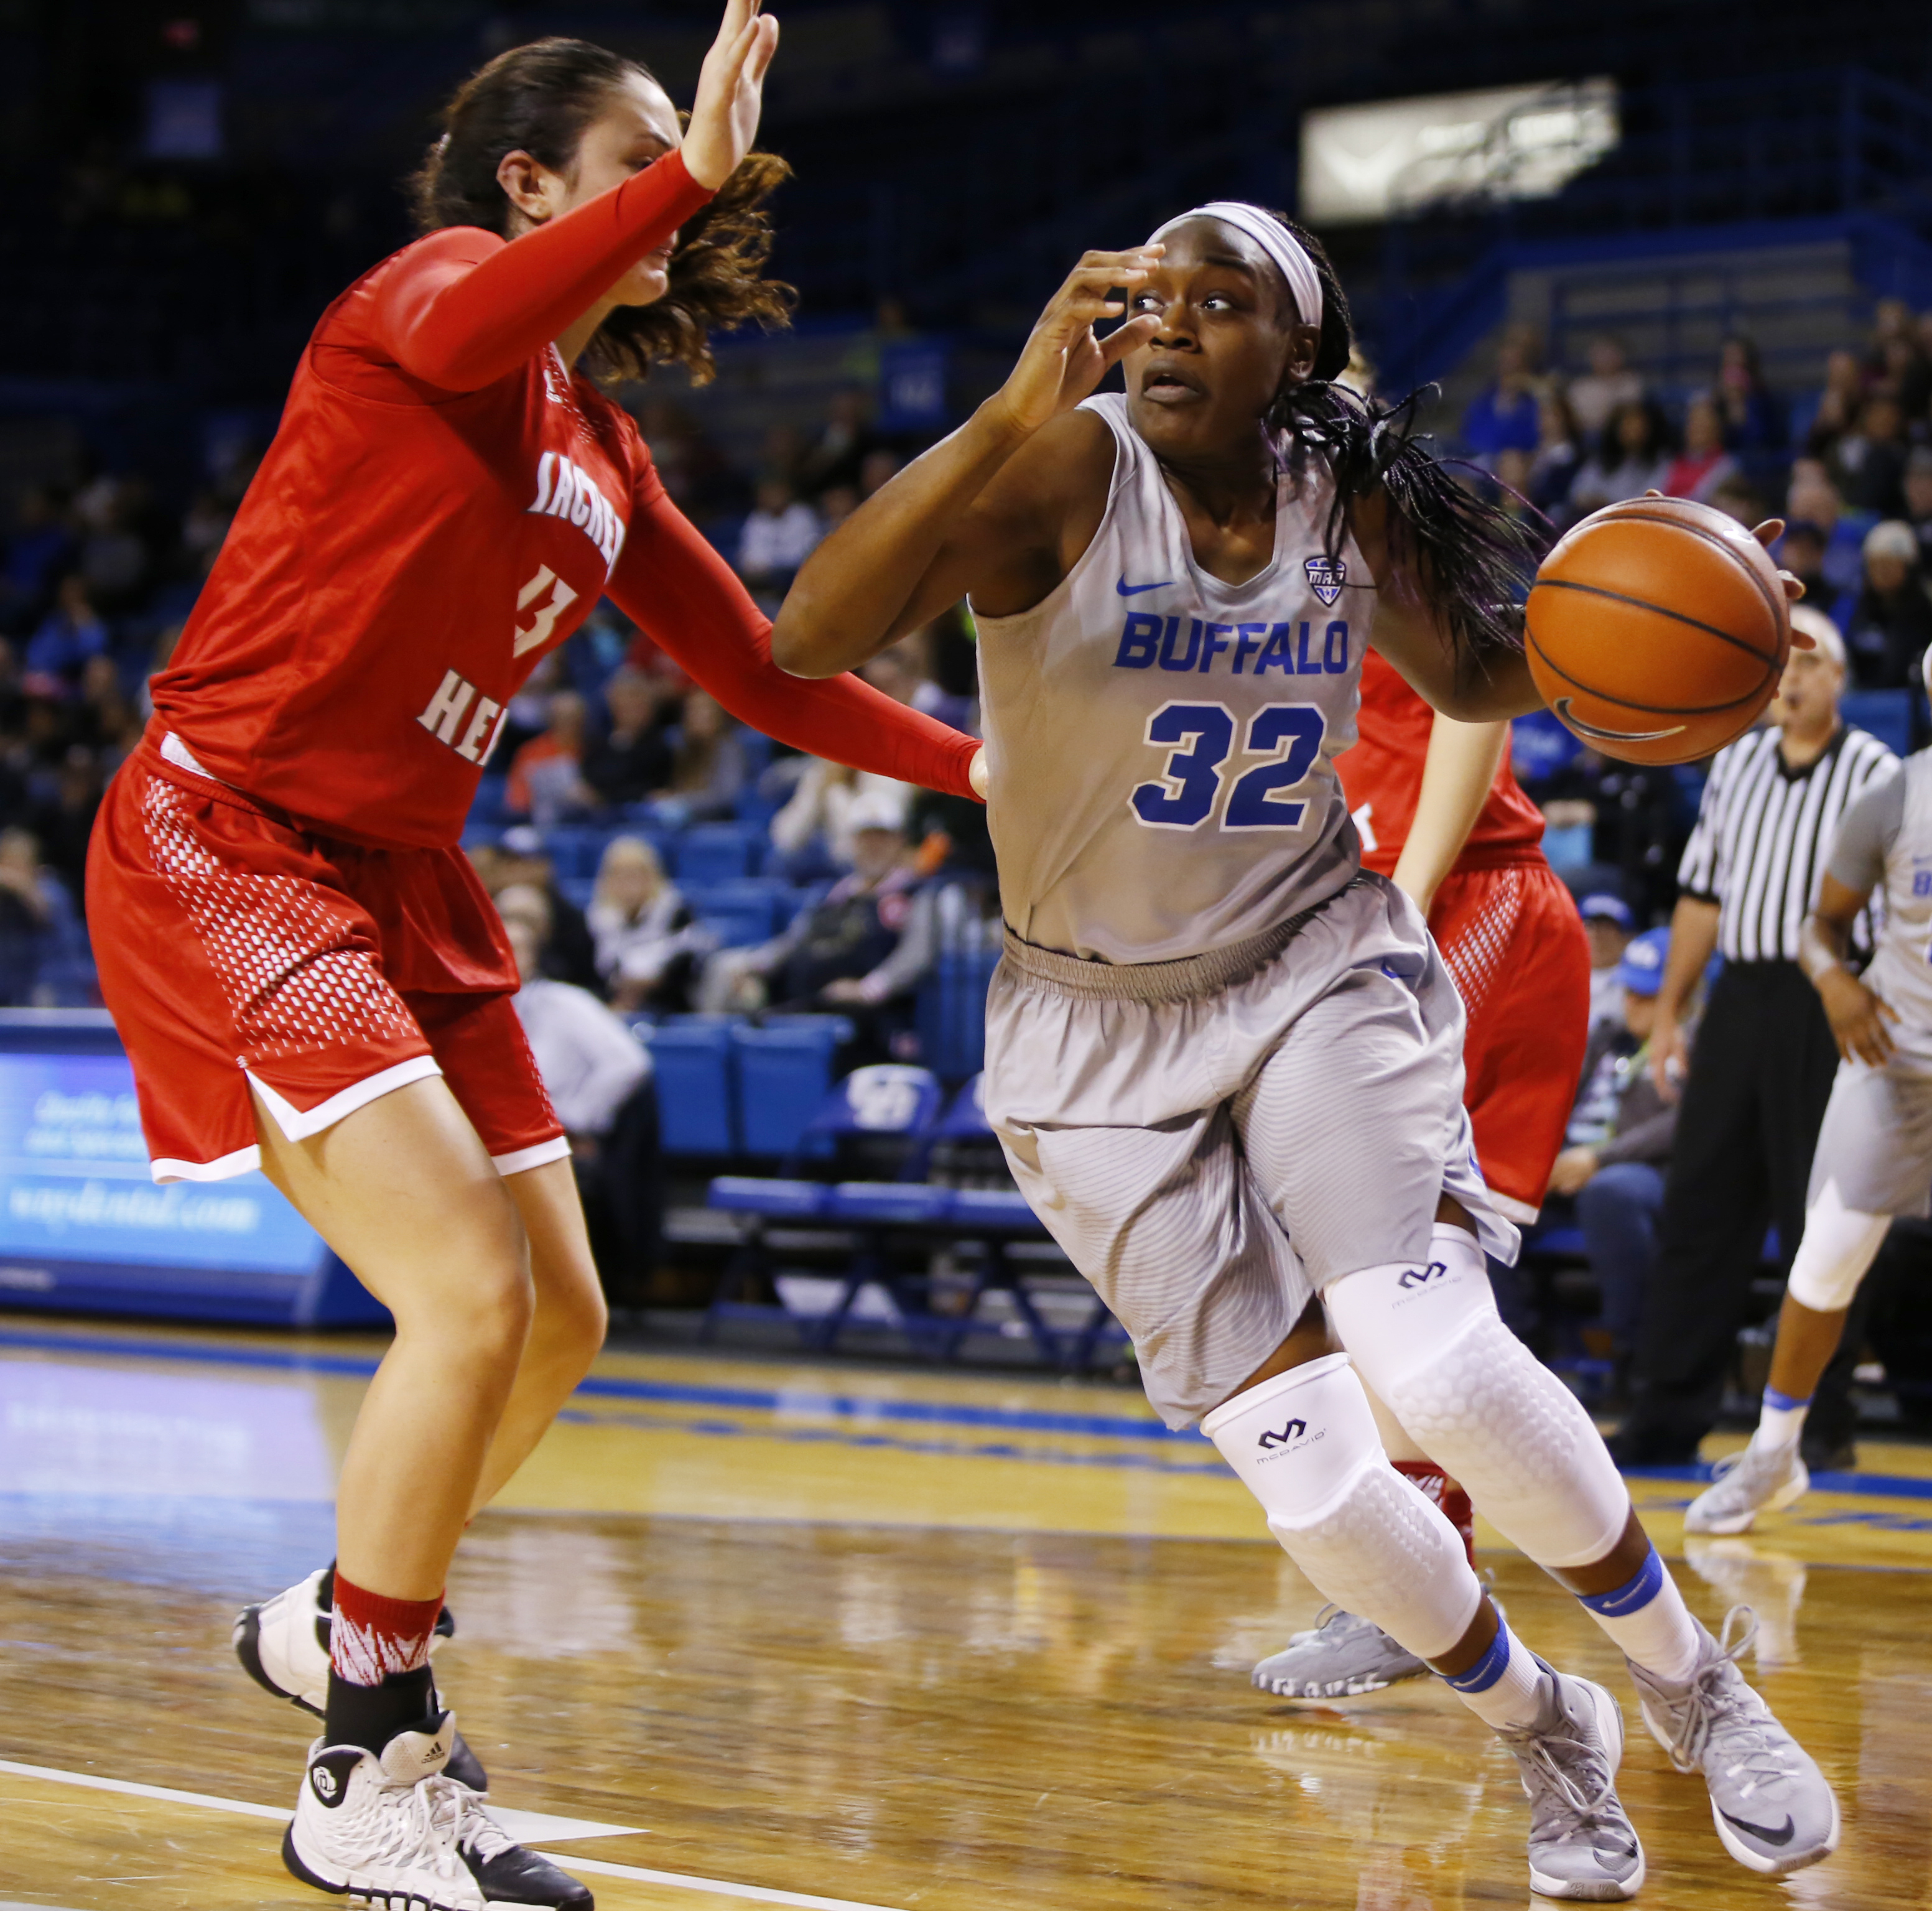 UB's Brittany Morrison drives to the basket against Sacred Heart. (Harry Scull Jr./Buffalo News)